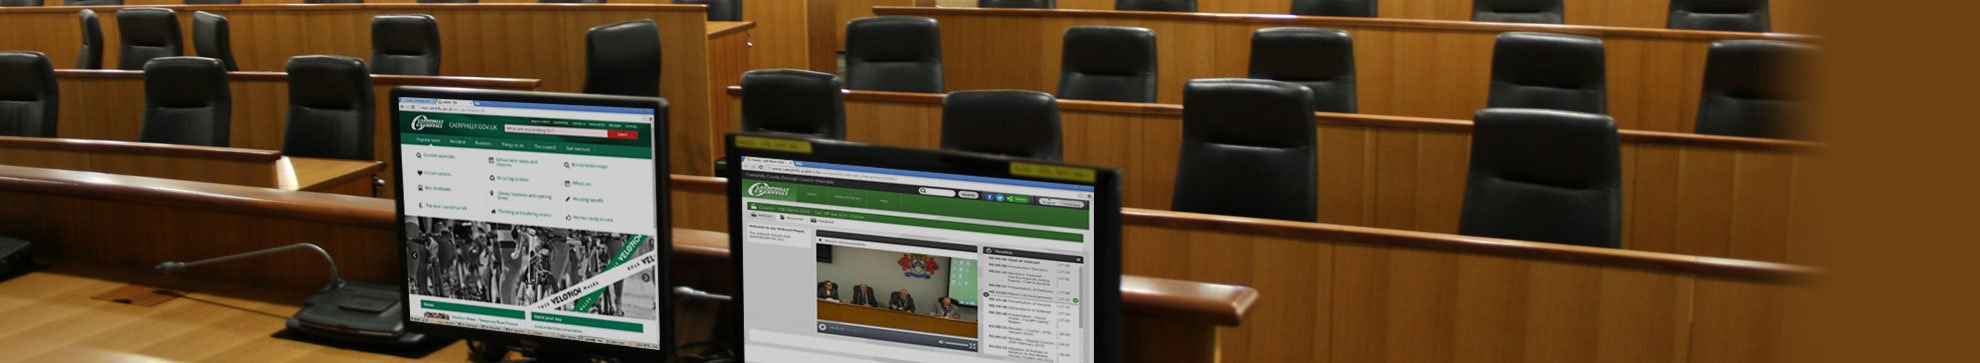 Webcasting - council chamber